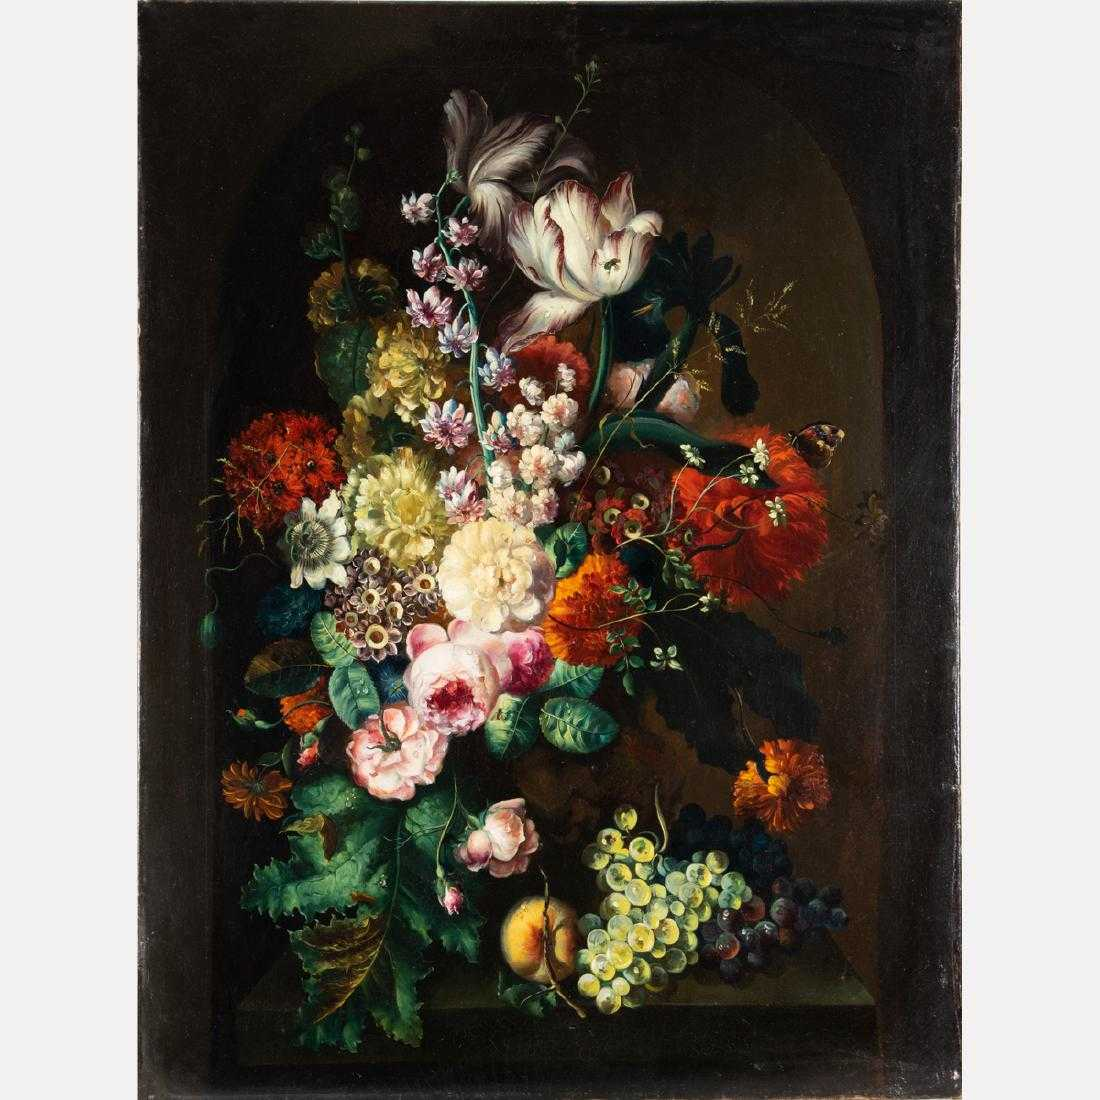 Oil on canvas titled Still Life with Flowers after Margaretha Haverman (circa 1693-after 1739), the renowned flower painter from the Northern Netherlands (est. $5,000-$7,000).